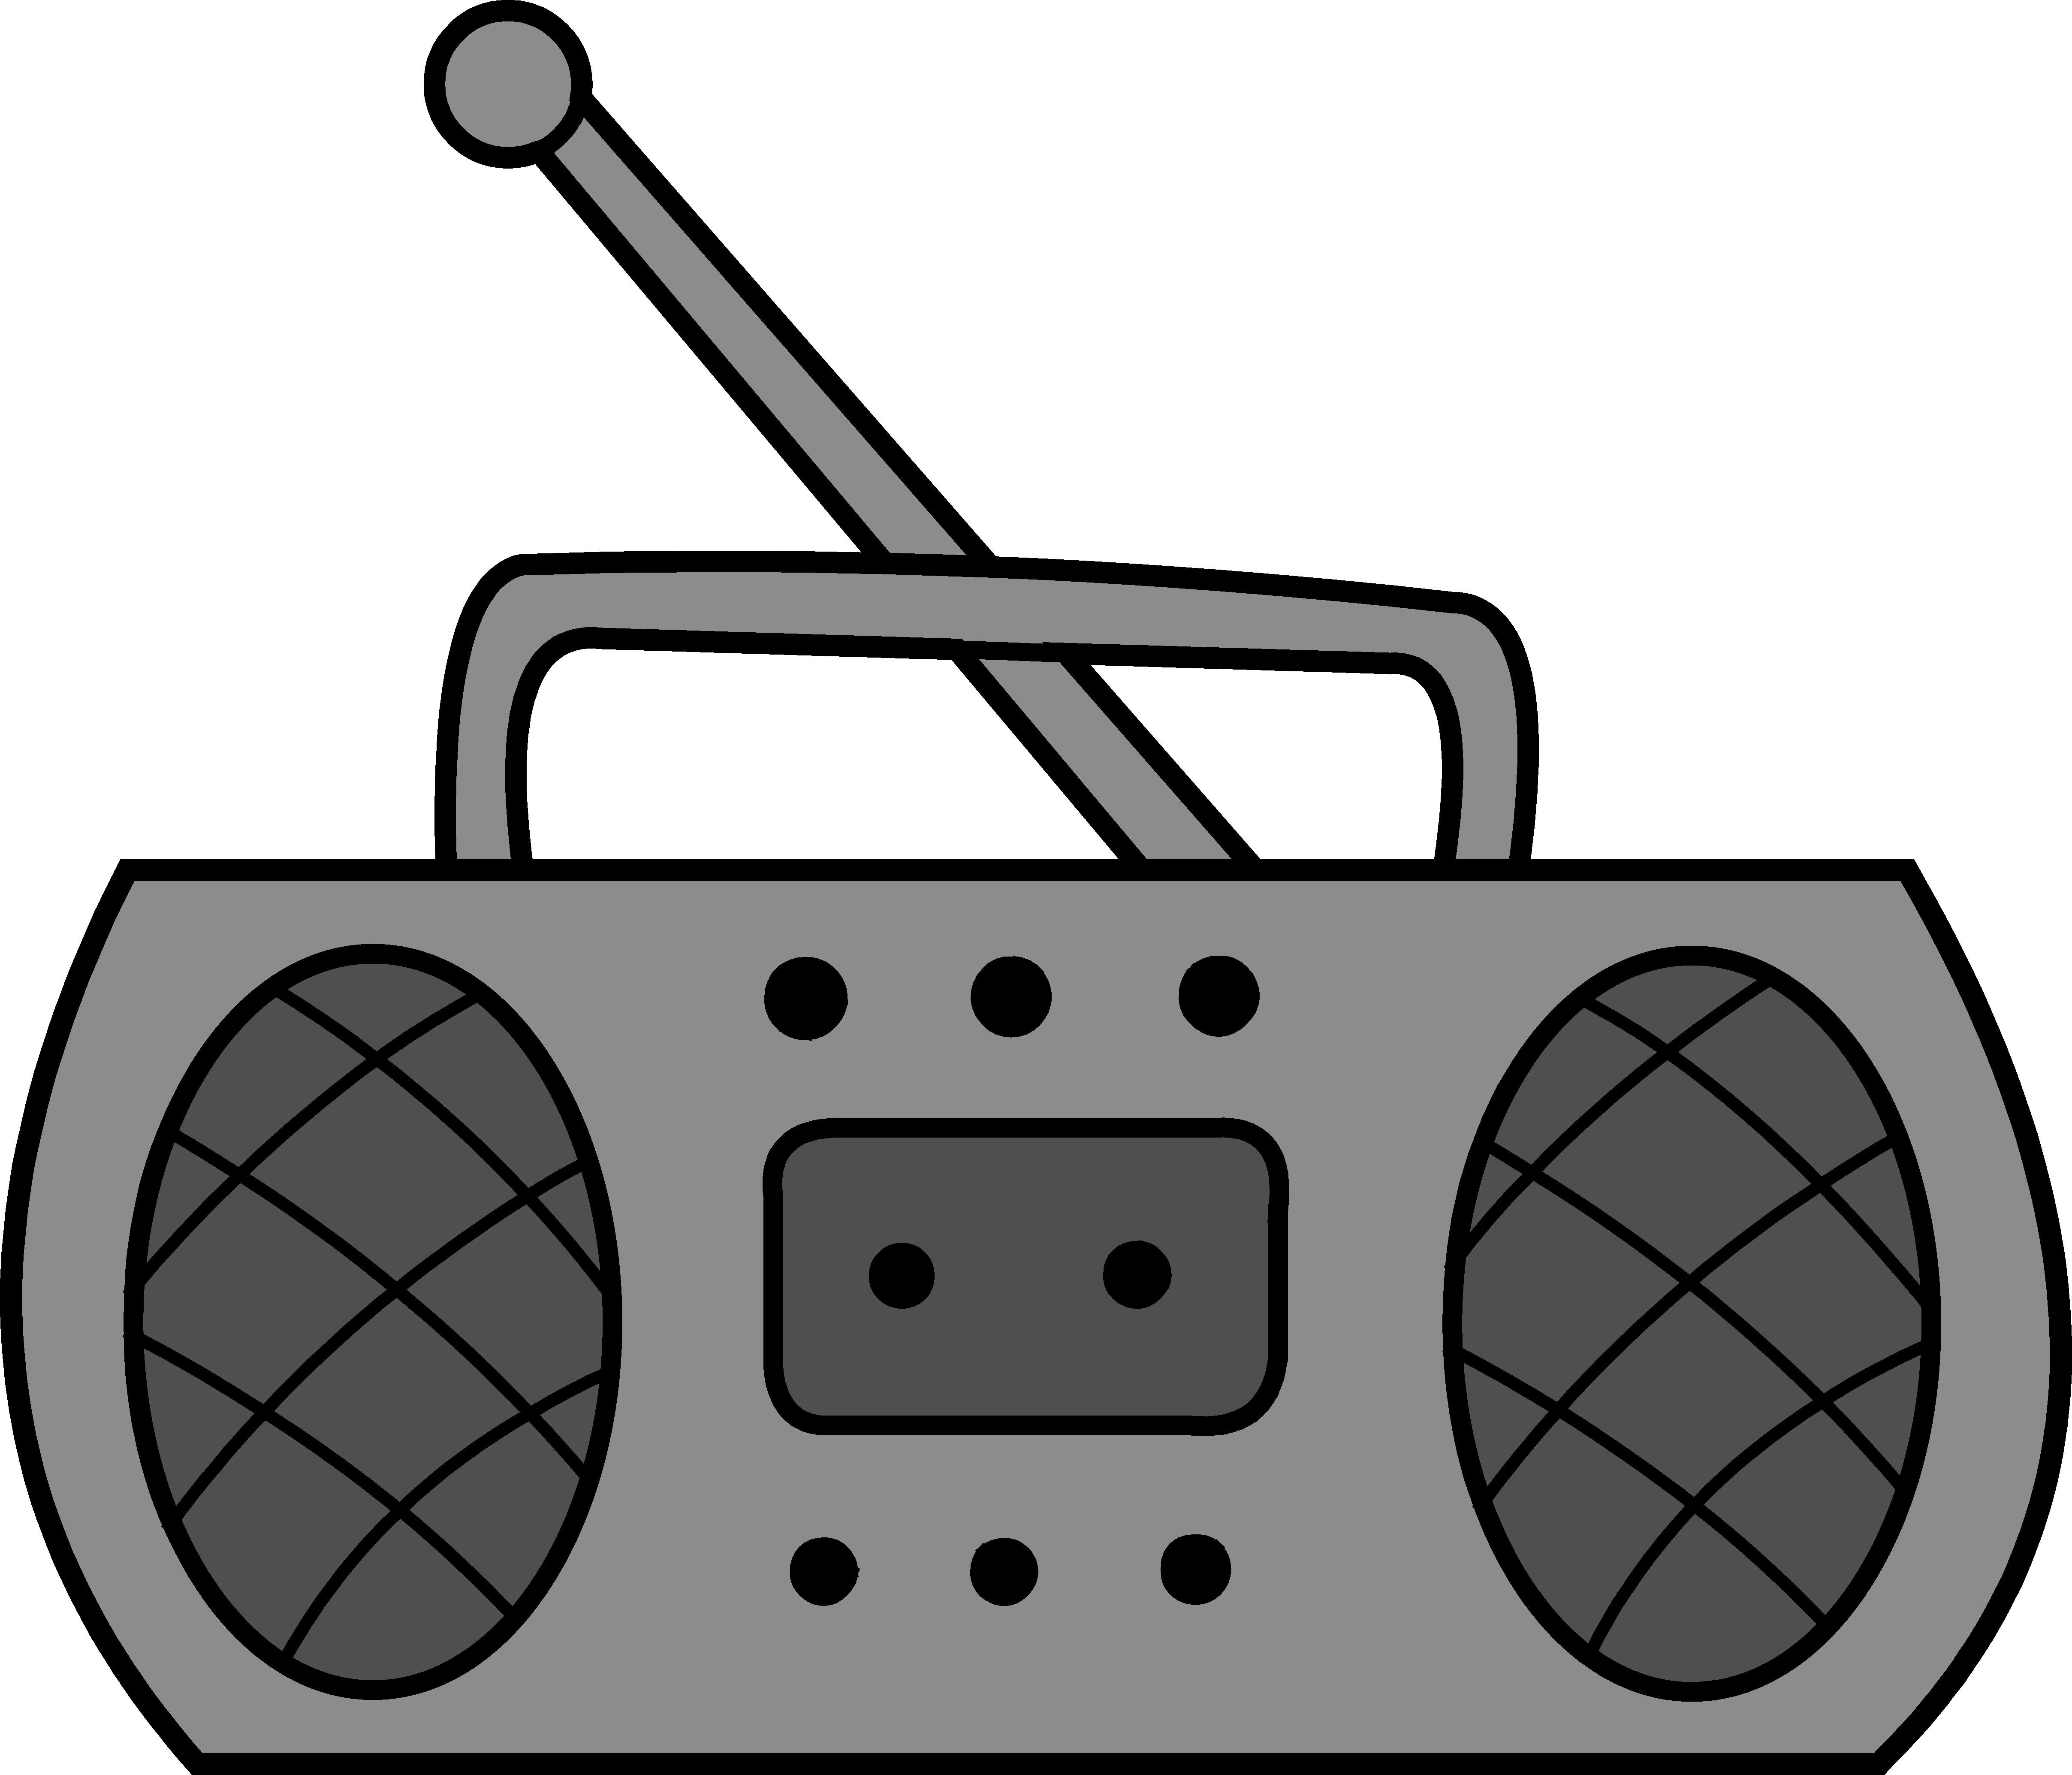 png transparent stock Radio free on dumielauxepices. Advertising clipart broadcasting.